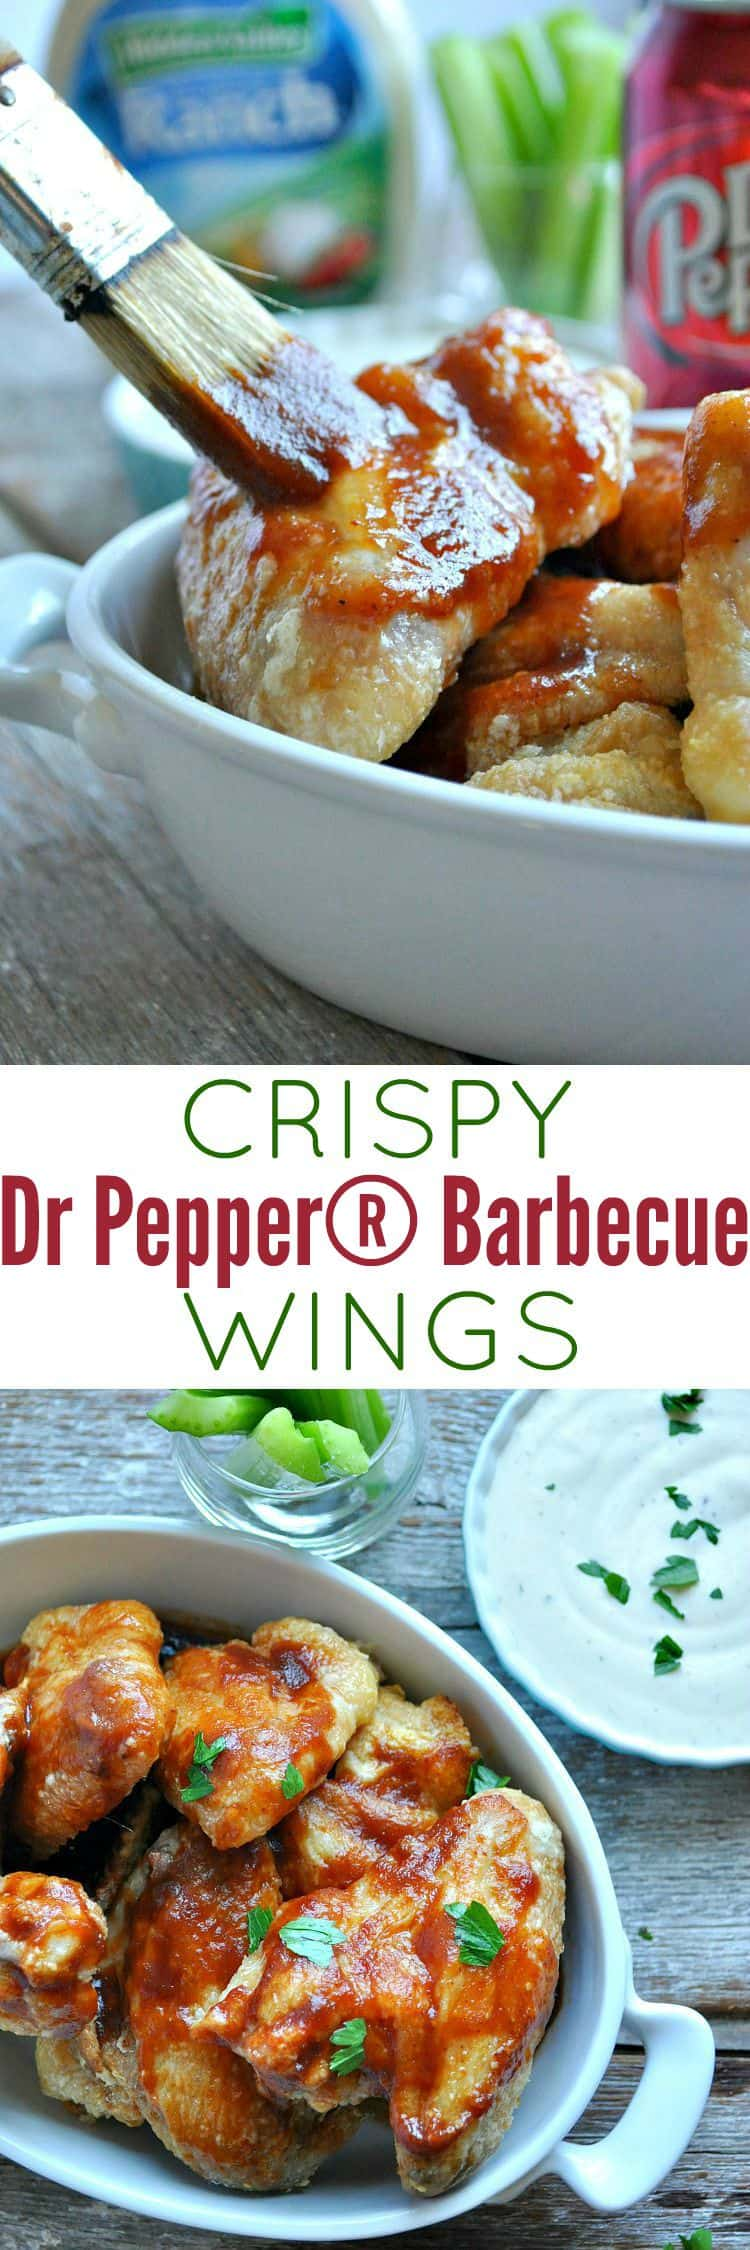 Crispy Dr. Pepper® Barbecue Wings